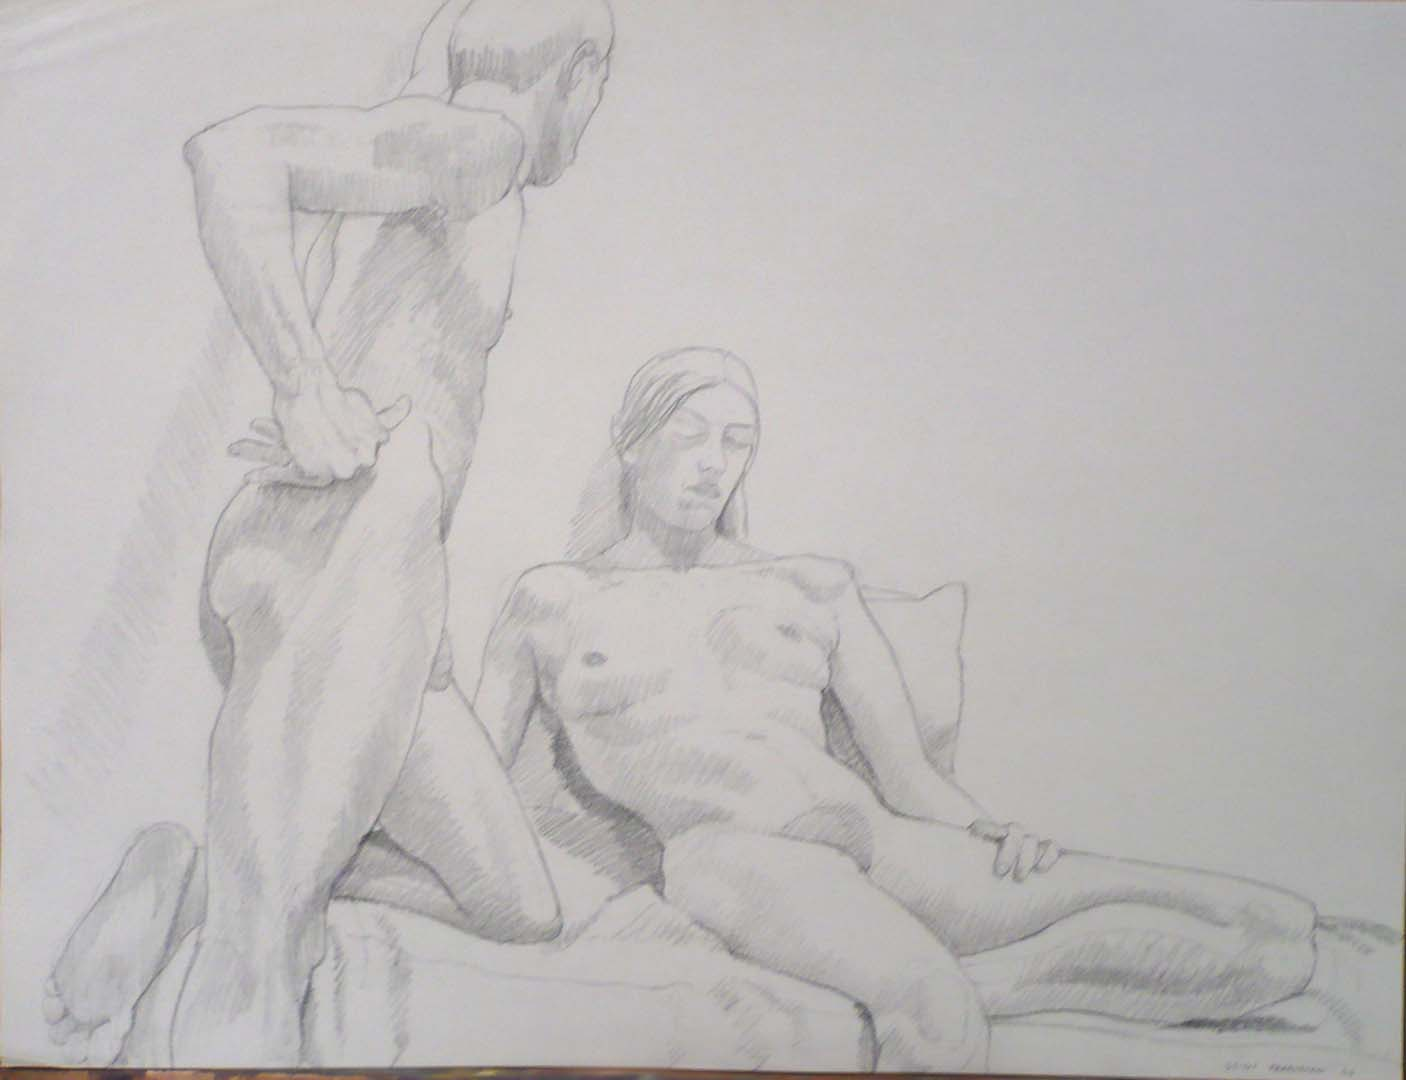 1966 Standing Male Leaning Forward on Seated Female Pencil 17.875 x 23.625